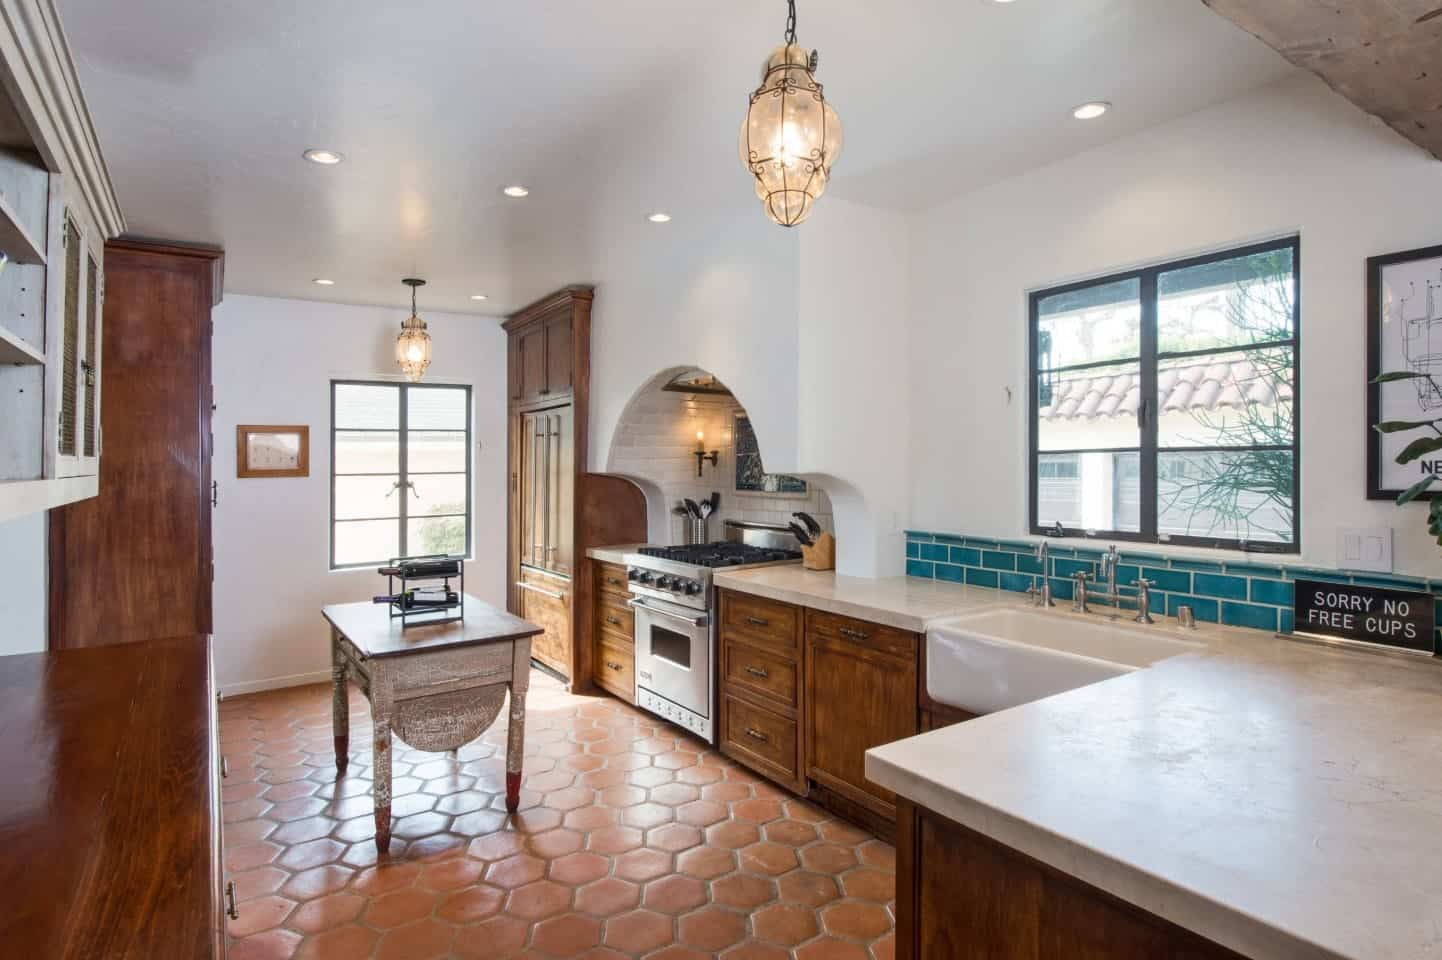 The hexagonal terracotta flooring tiles provide a complex earthy background for the wooden L-shaped kitchen peninsula with white countertops that blend with the arch of the cooking area and is contrasted by the green backsplash.